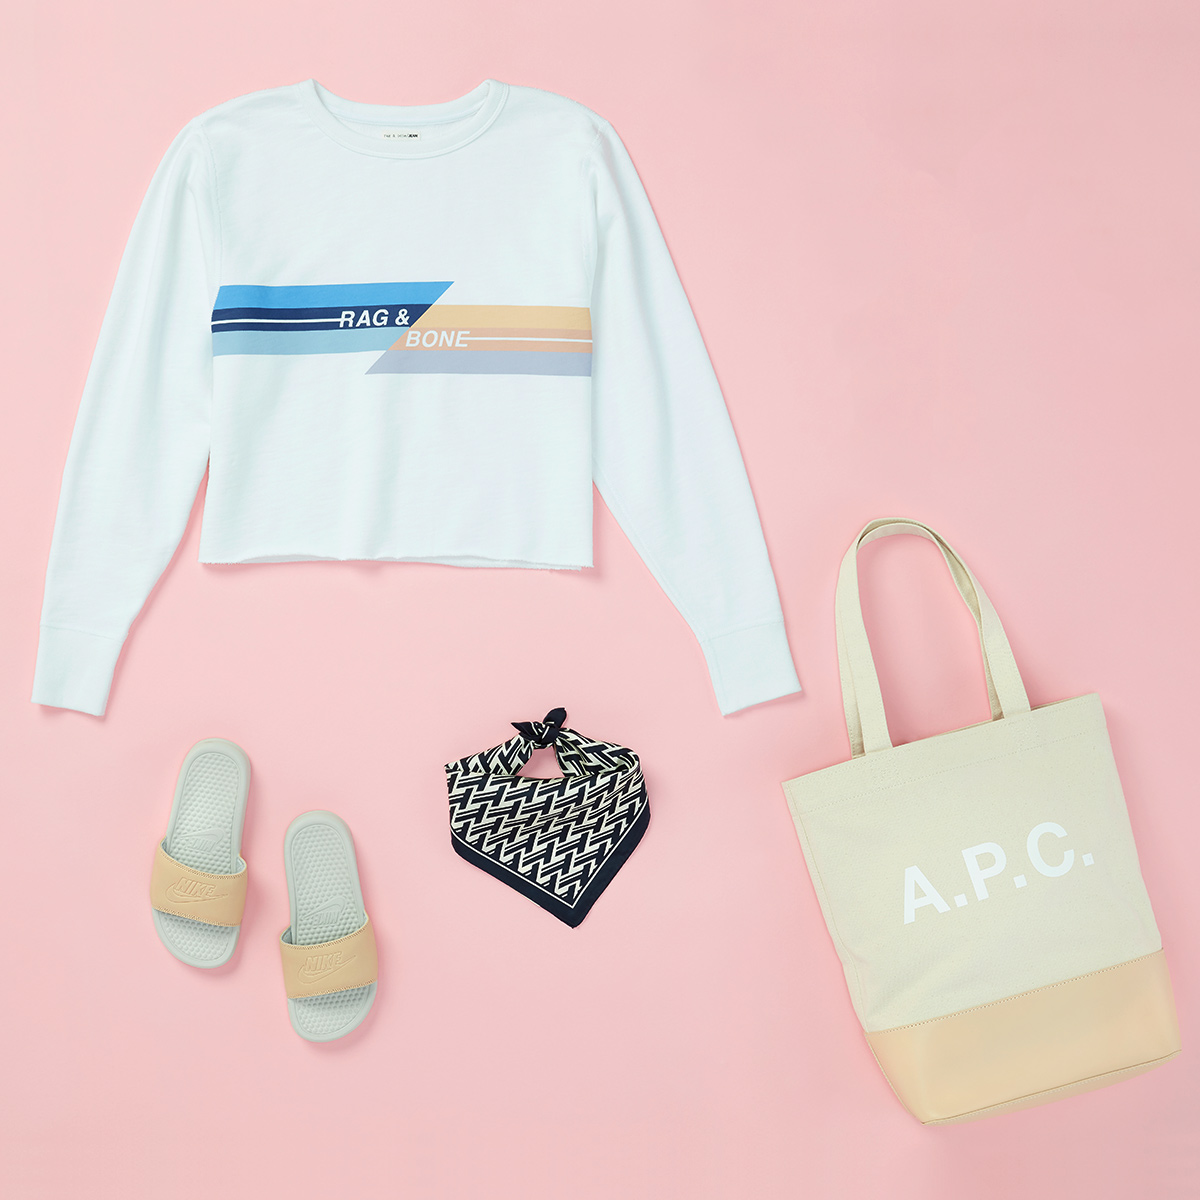 Four women's fashion items - a tote bag, athletic slip-on sandals, a black & white scarf, and a white sweatshirt laid flat (with garment logos prominently displayed) - on a pink background.